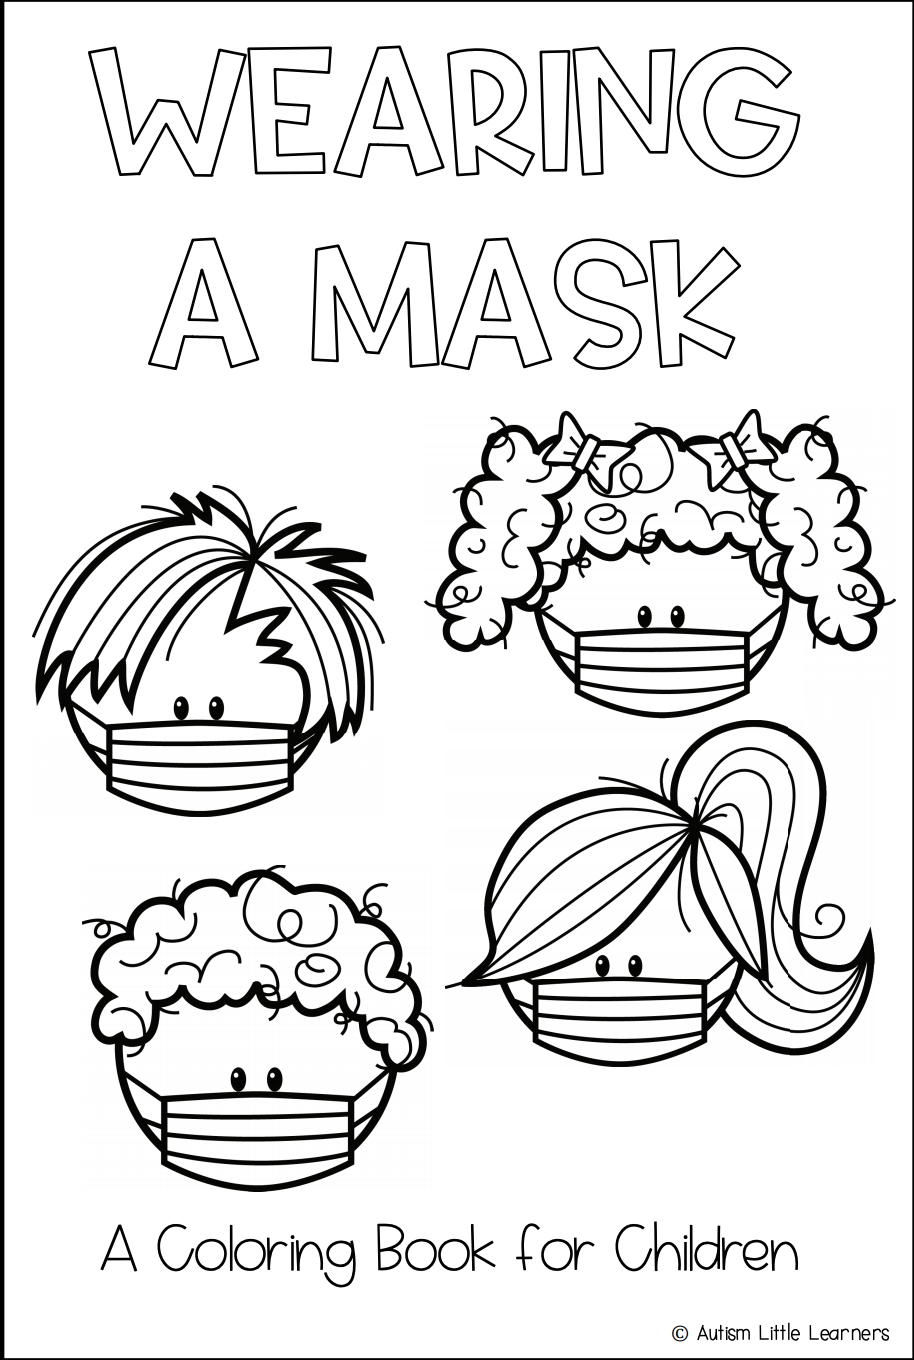 Wearing a Mask: A Coloring Book for Children